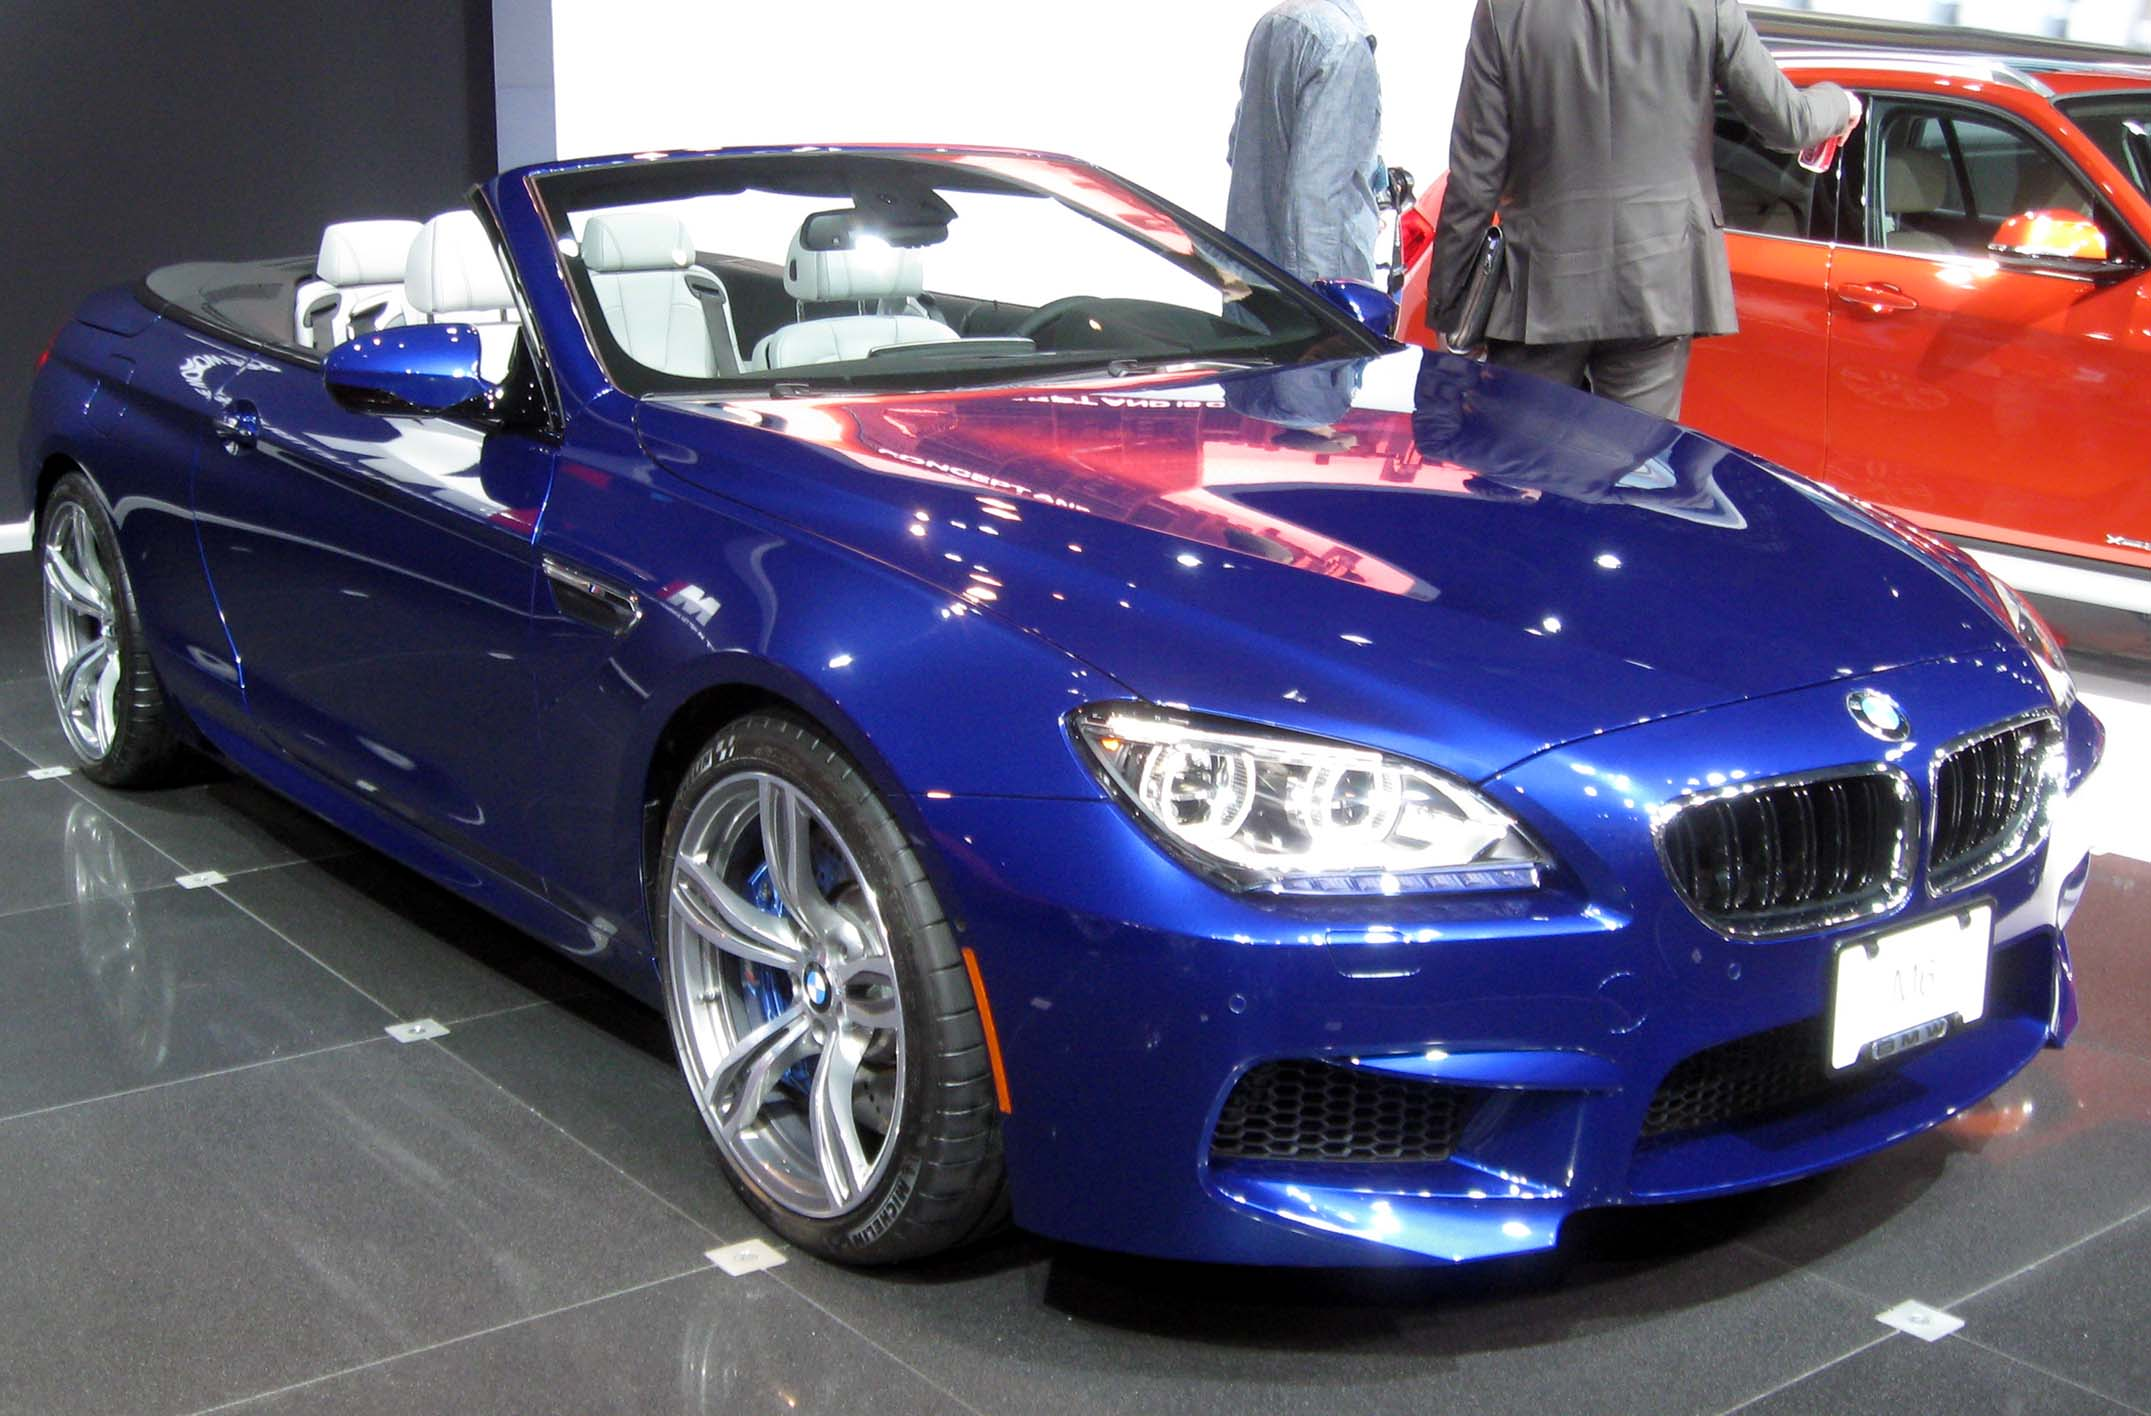 2014 bmw m6 convertible f13 pictures information and specs. Cars Review. Best American Auto & Cars Review